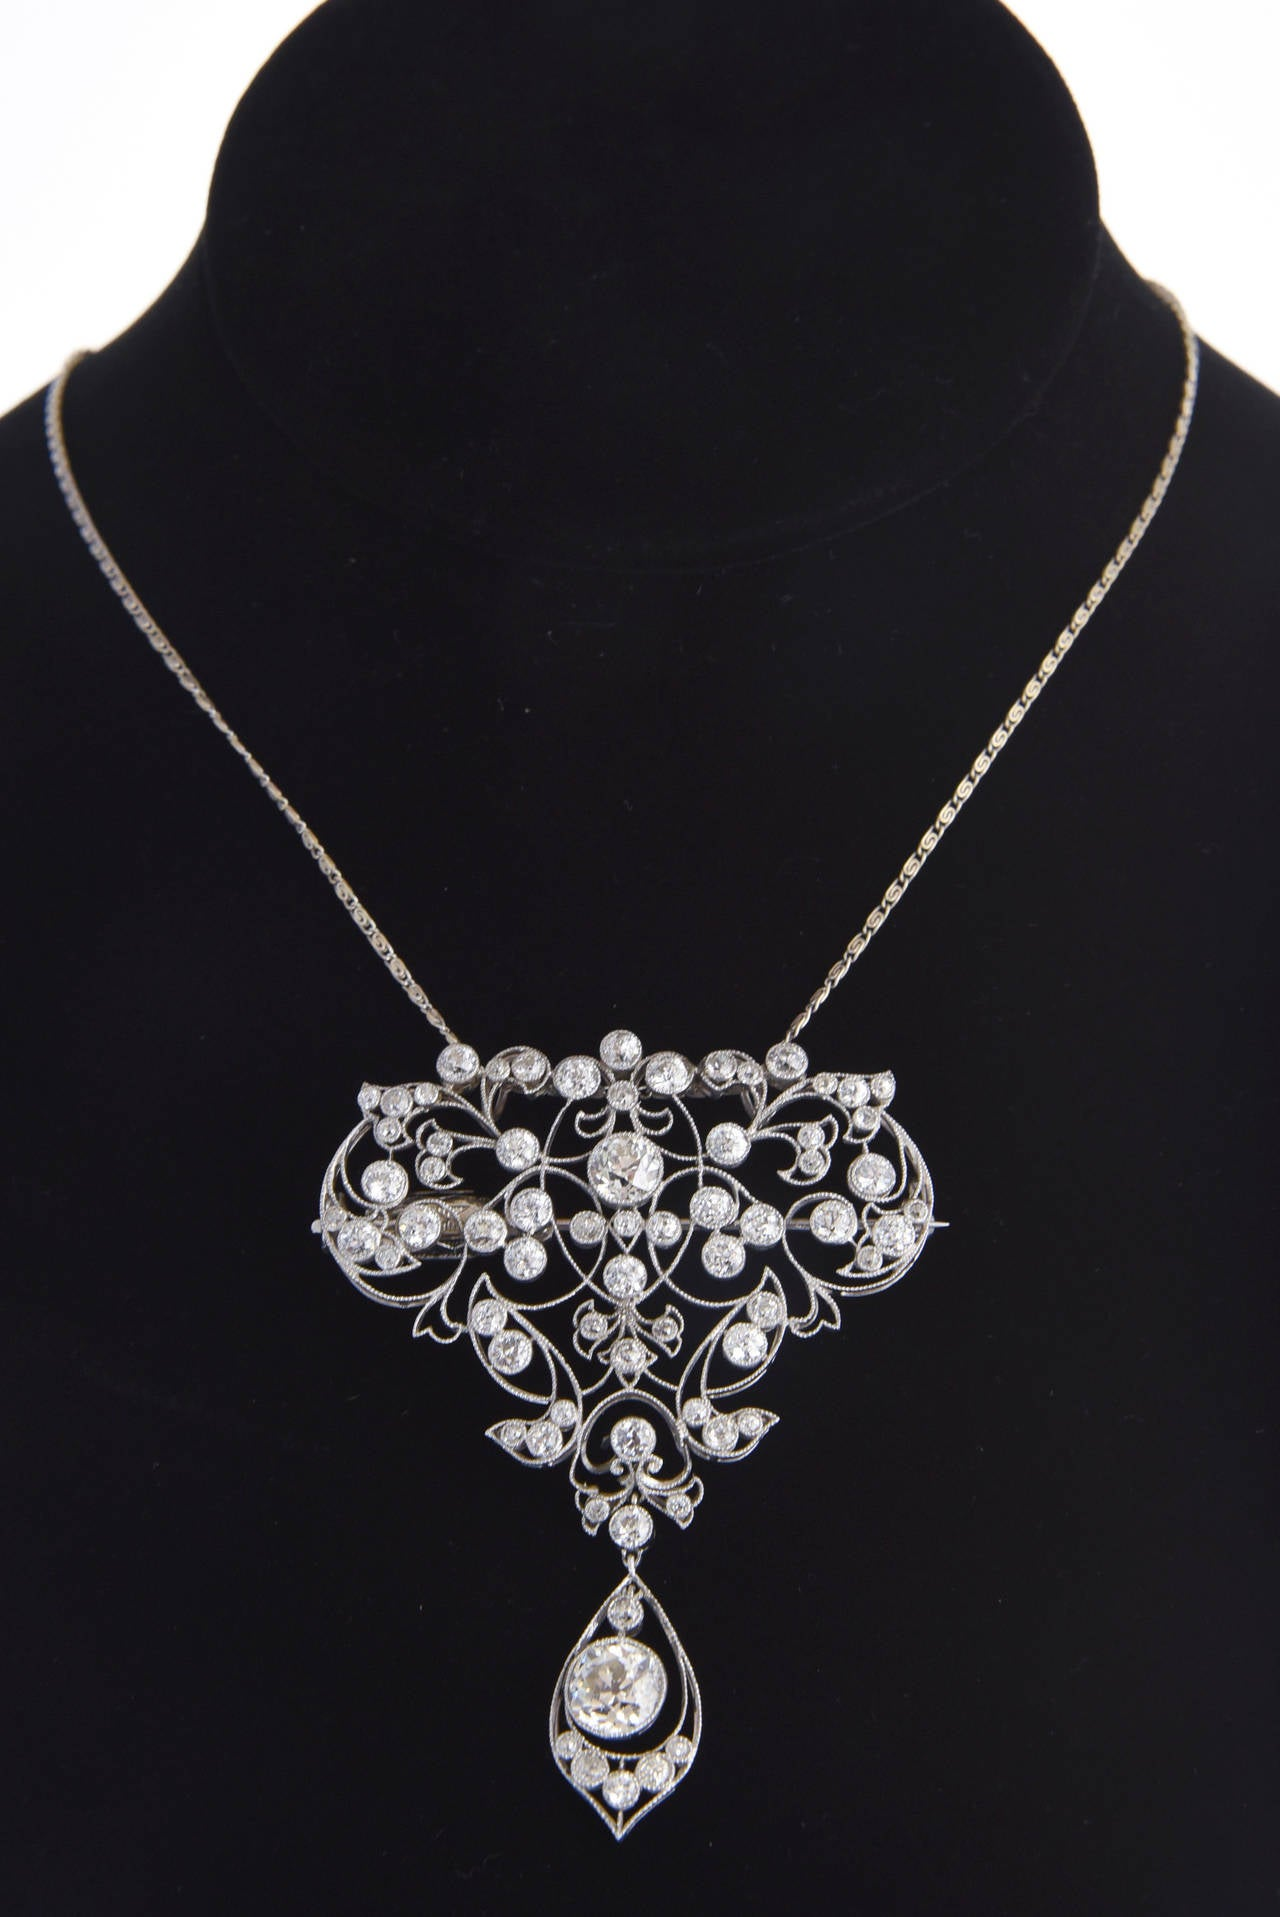 Belle Époque Diamond Platinum Floral Brooch Pendant 7